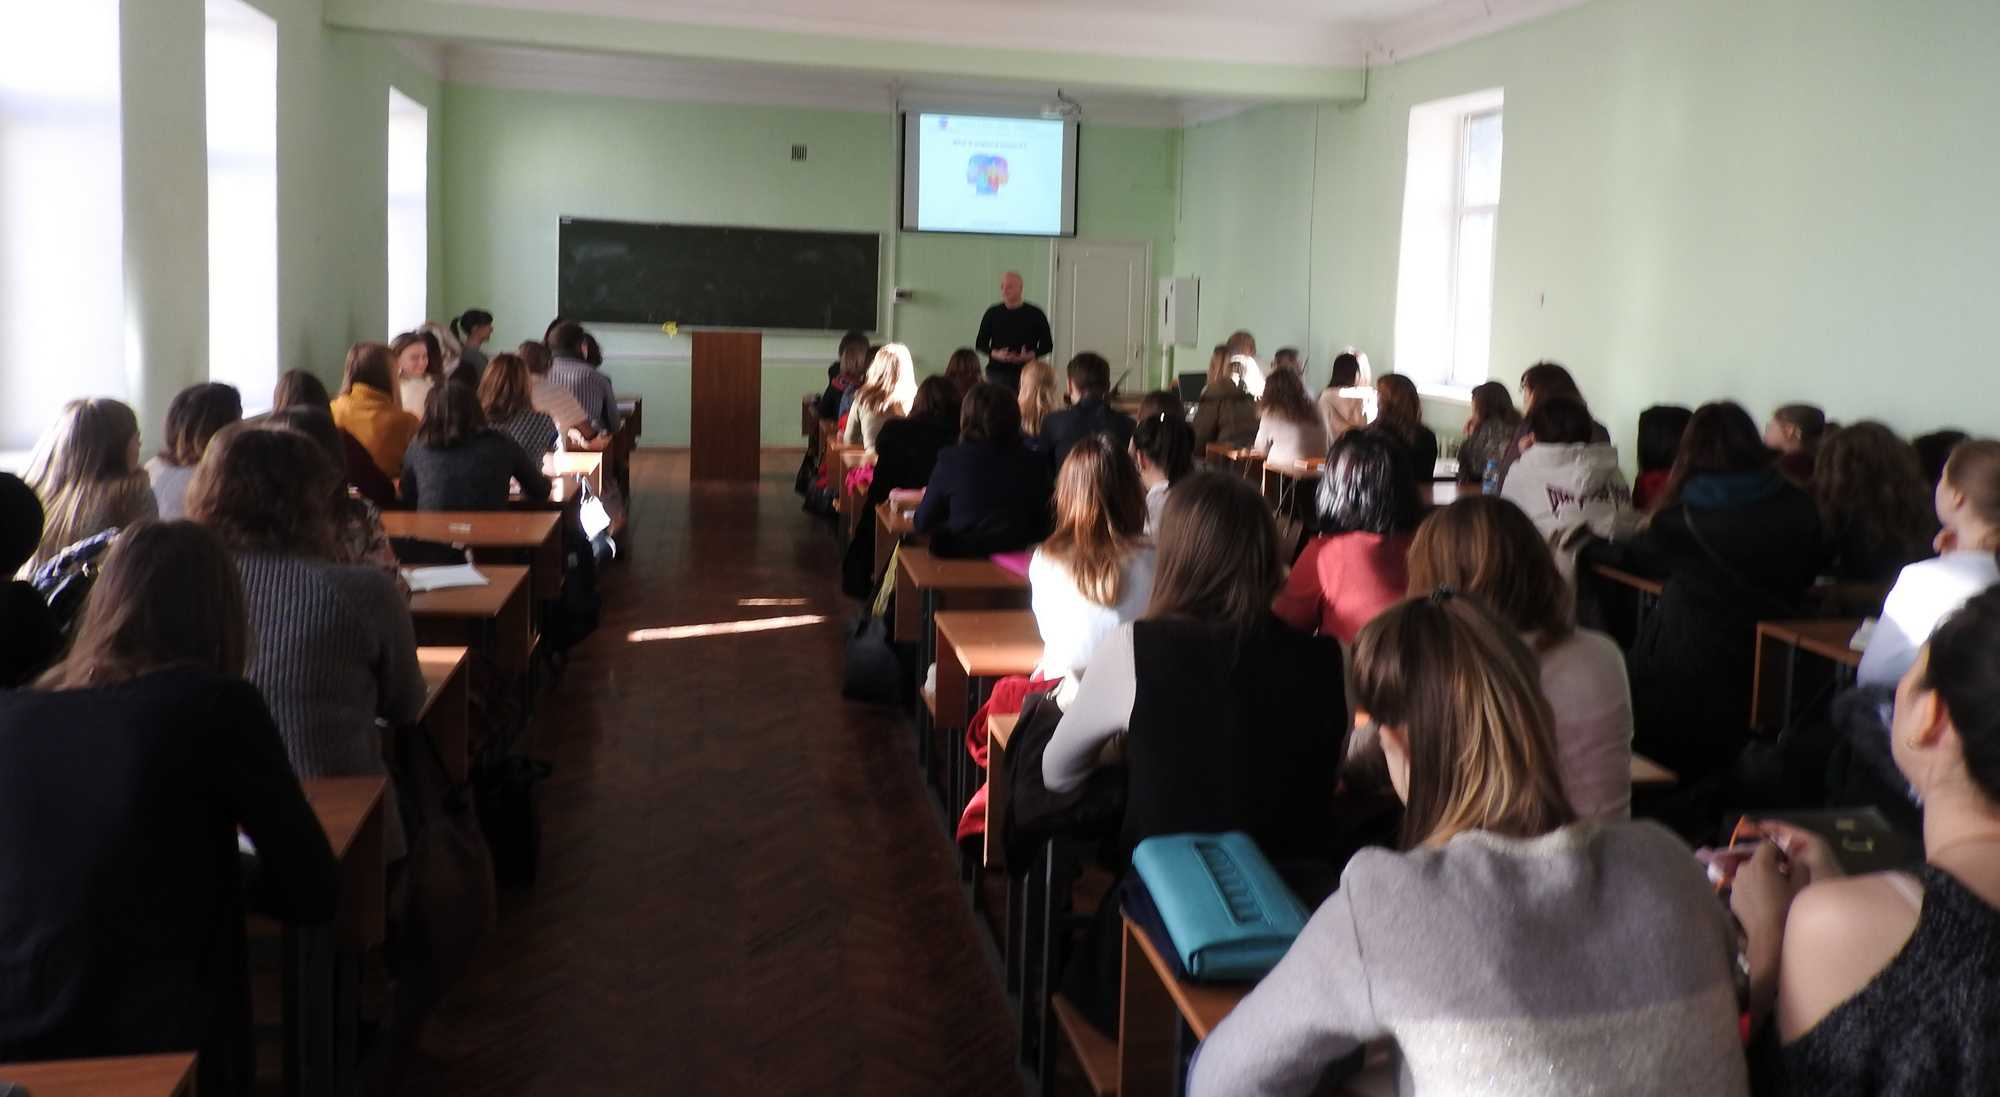 Voronezh State University (VSU). Faculty of Economics 18